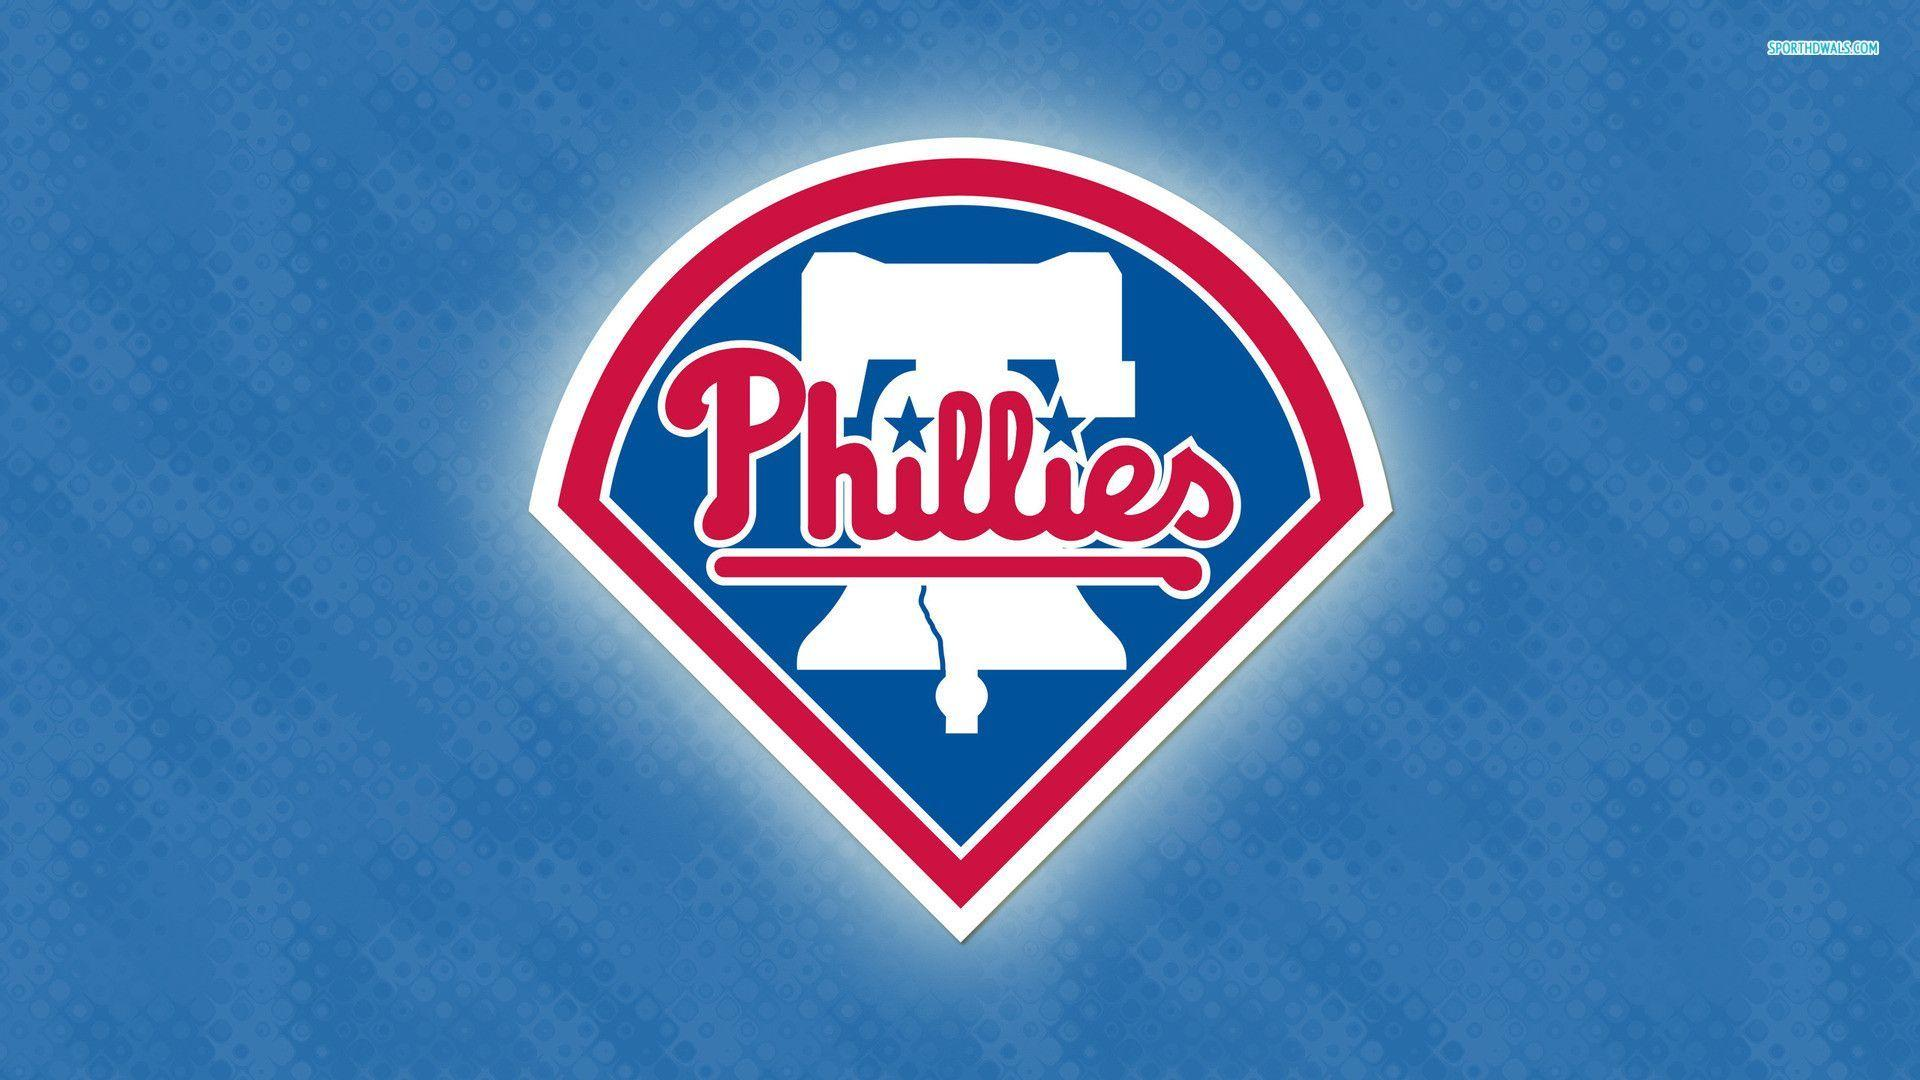 Philadelphia Phillies wallpapers | Philadelphia Phillies background